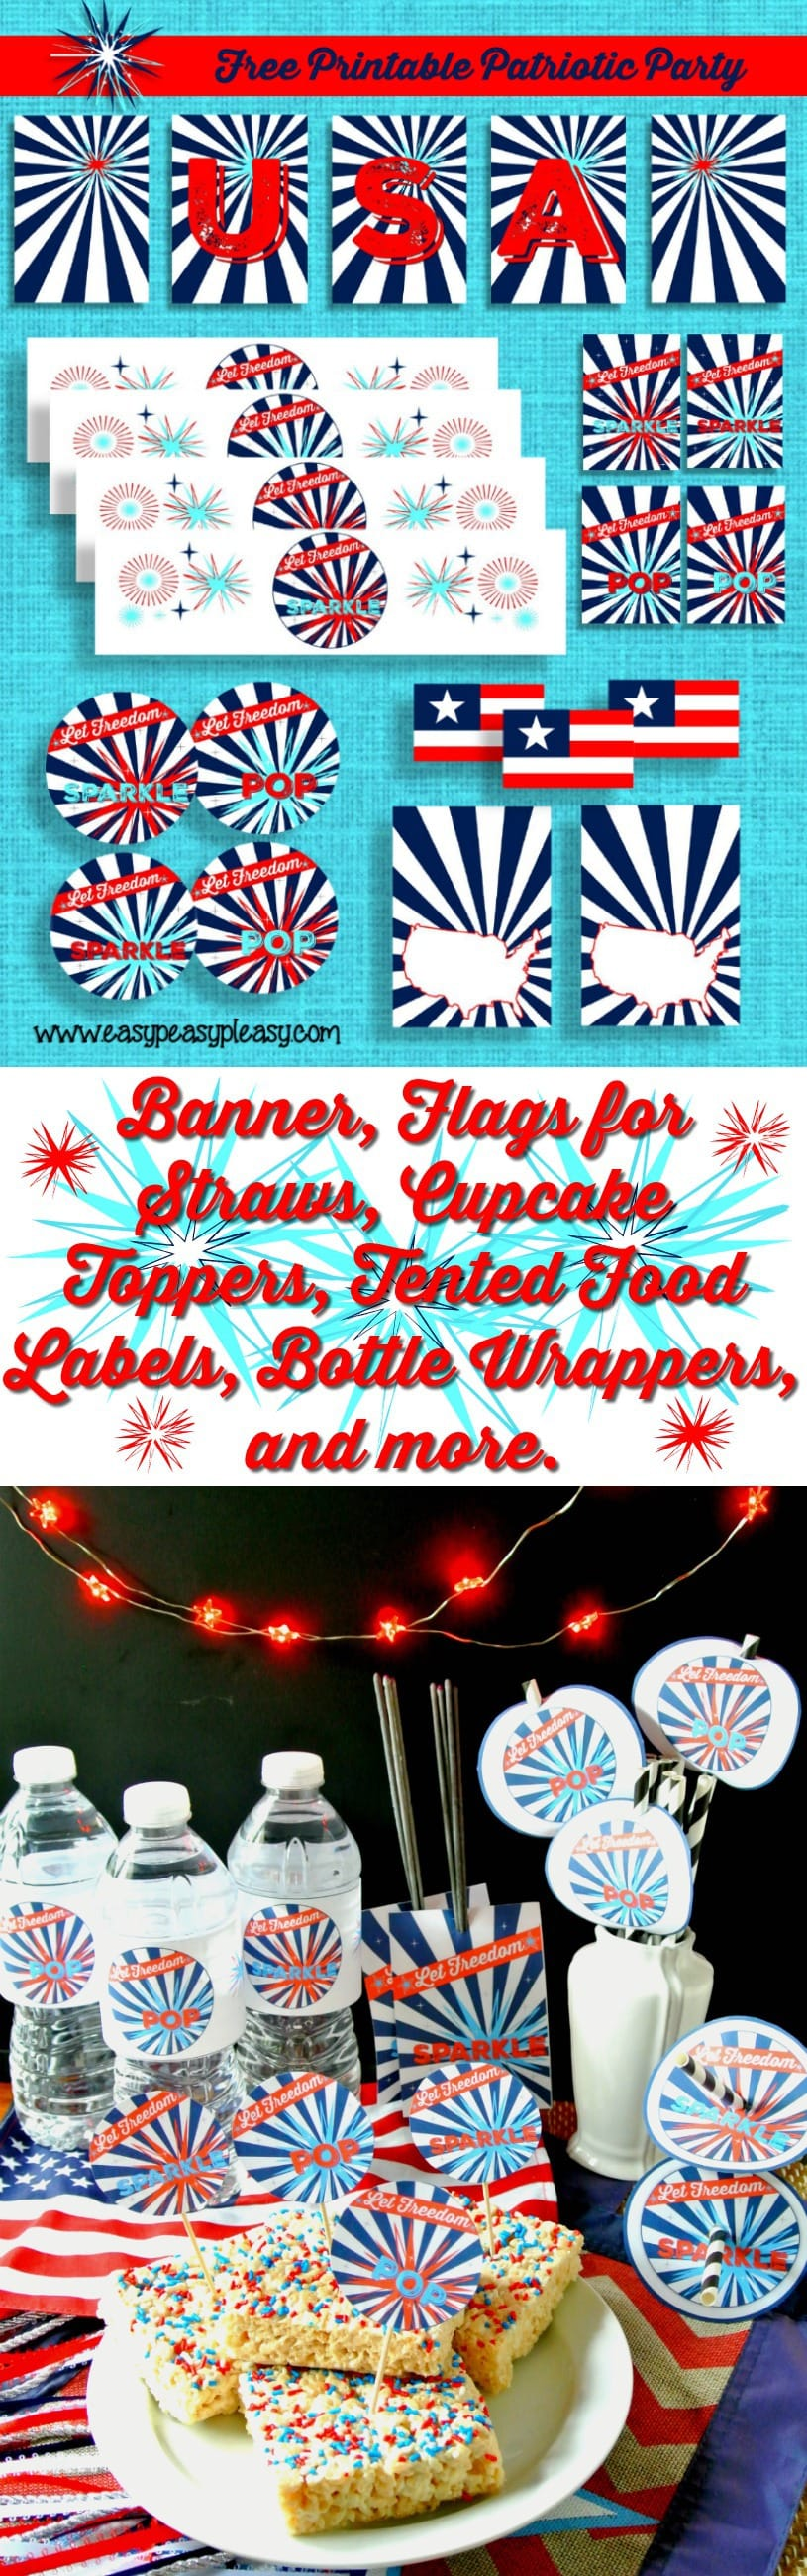 Free Printable Patriotic Party Pack including banner, Straw Flags, Treat Toppers, Bottle Wrappers, Sparkler Labels, and more!